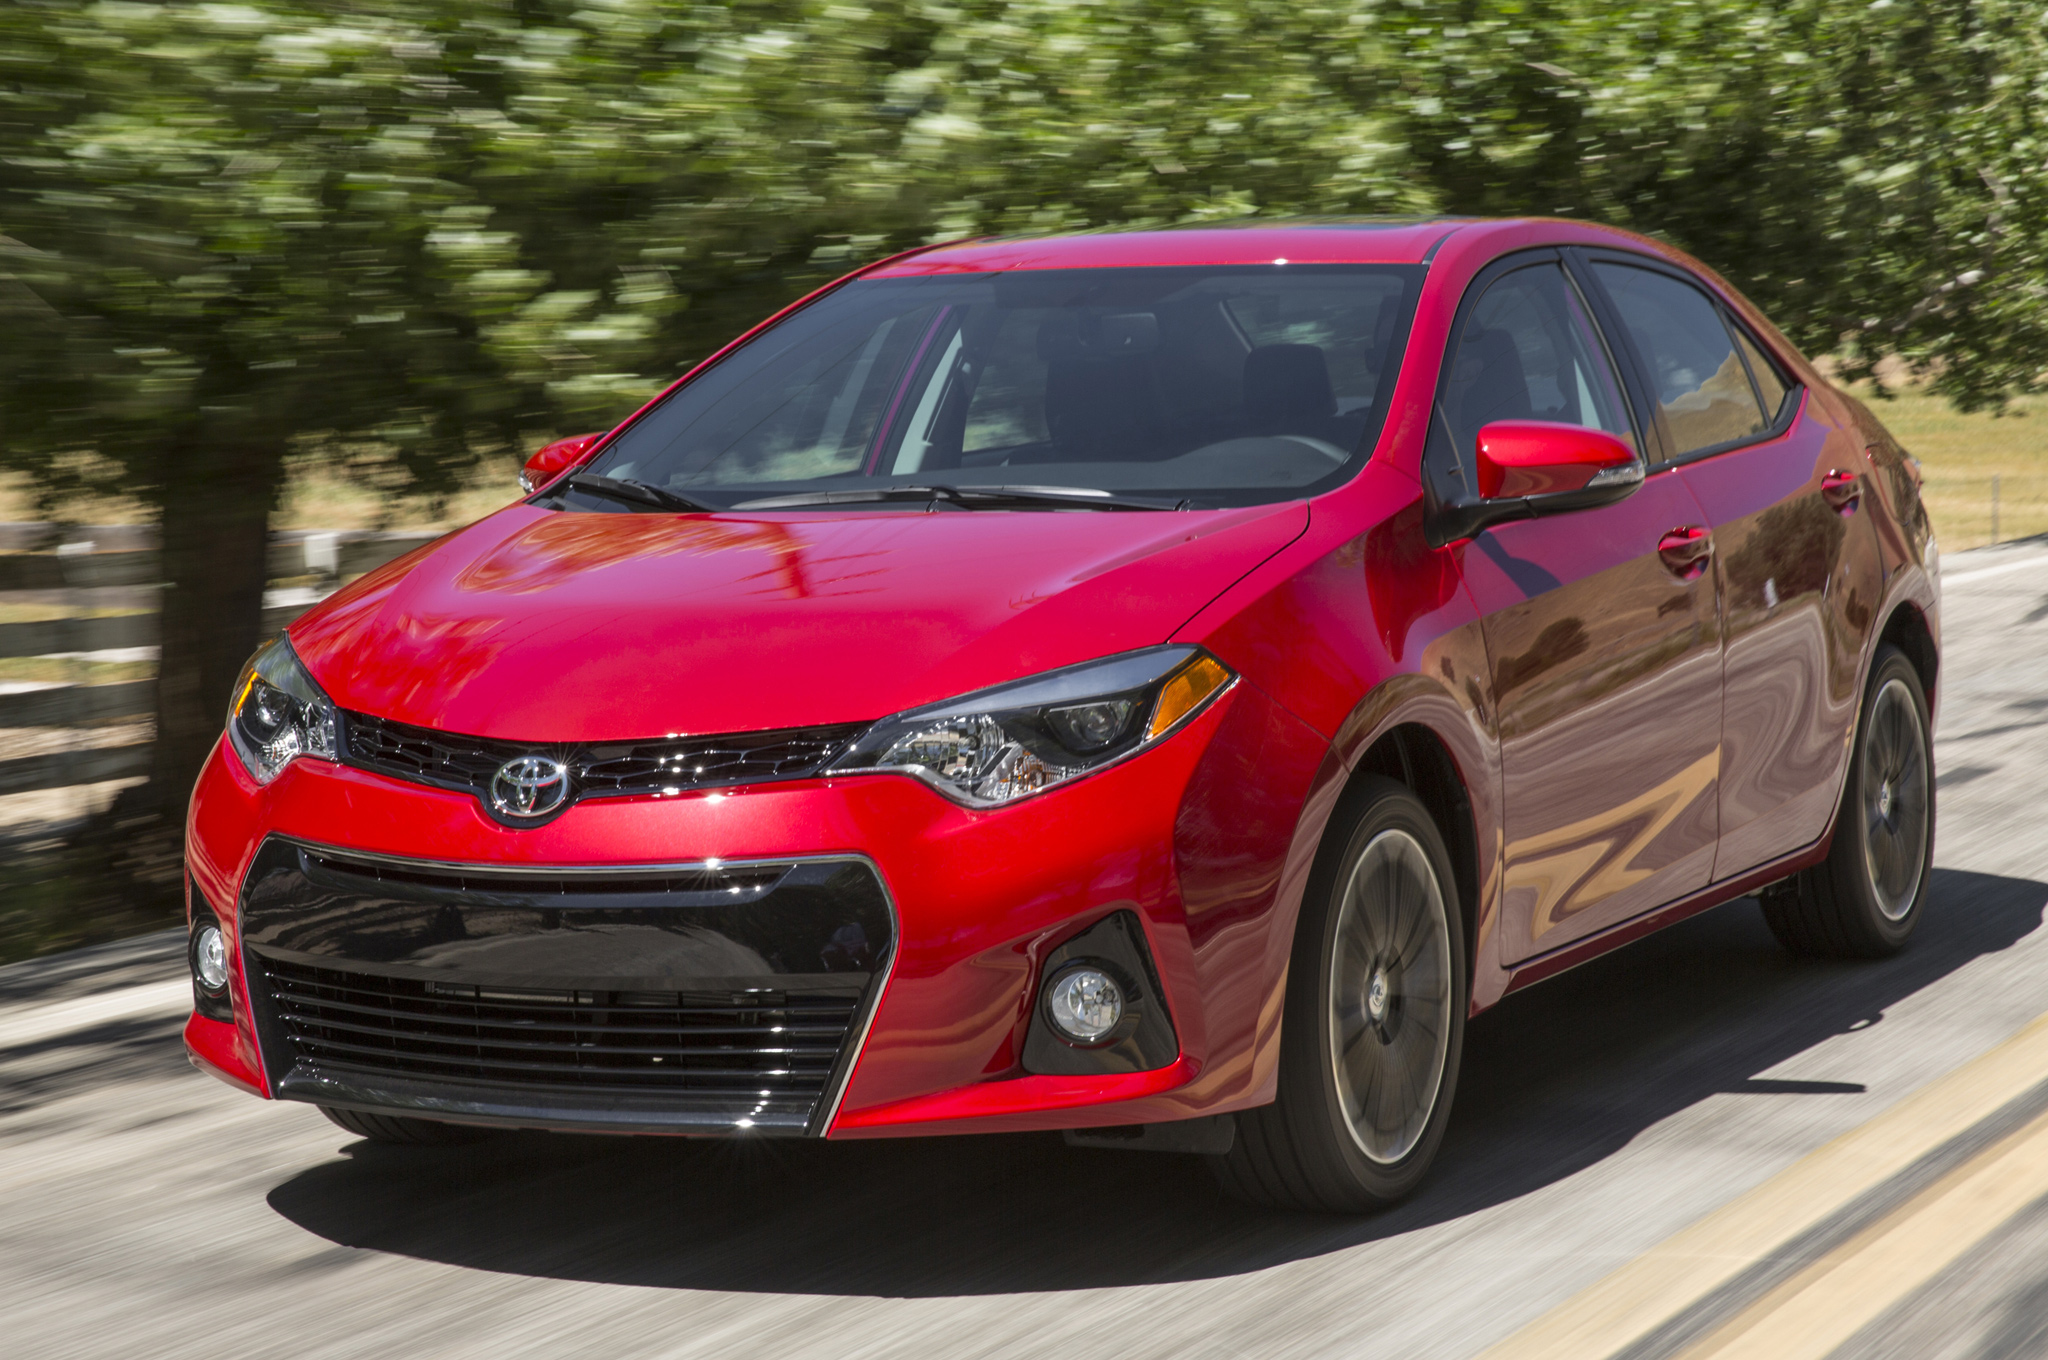 October 2013 Compact Sales: Honda Civic Takes Top Spot from Corolla